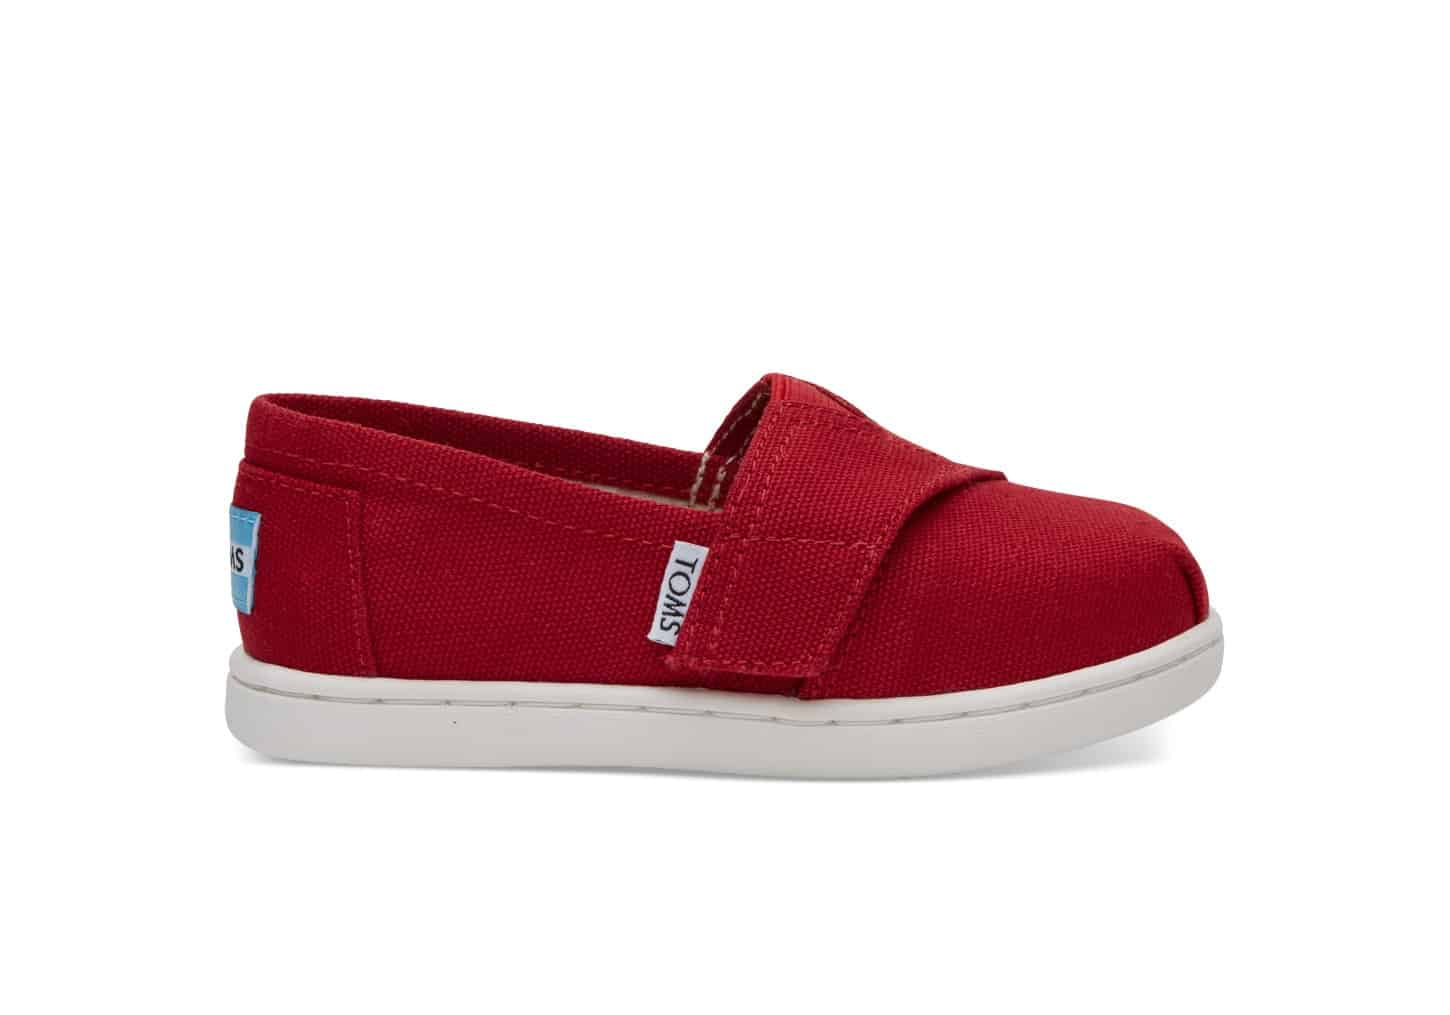 TOMS Canada Coupons & Promo Codes. Sale 2 used today Visit marloslash.ml now and sign up there to start saving. Promo Code $10 Off $99+ Or $20 Off $ Shop TOMS Canada today for savings that are out of control! $10 Off $99+ Or $20 Off $ With Code TOMORROW At TOMS! with promo code! Expires 08/21/ CST Get coupon code.